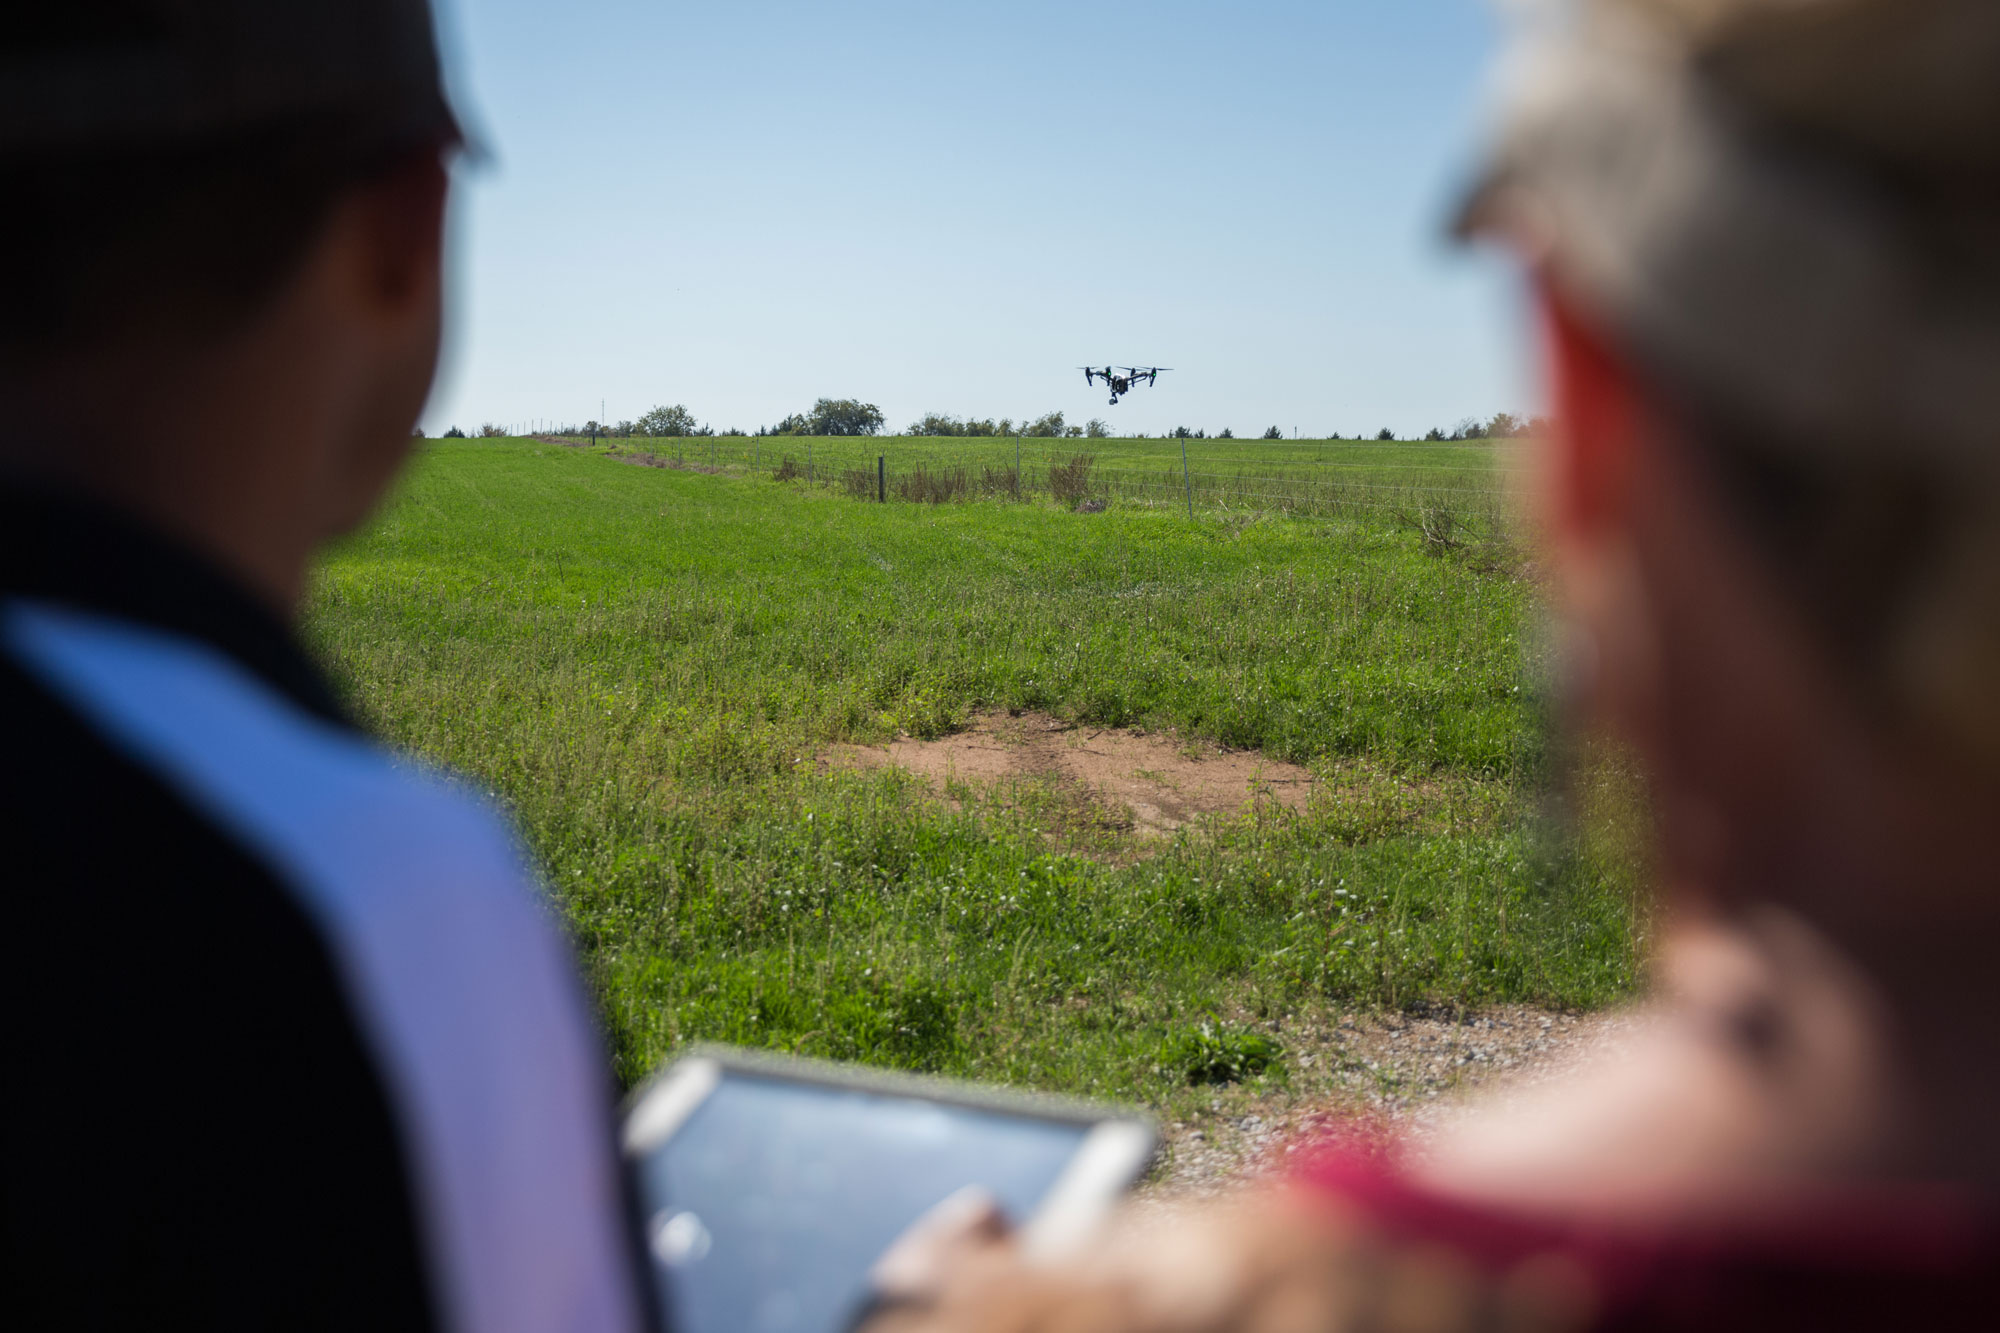 Working with Drones in pasture